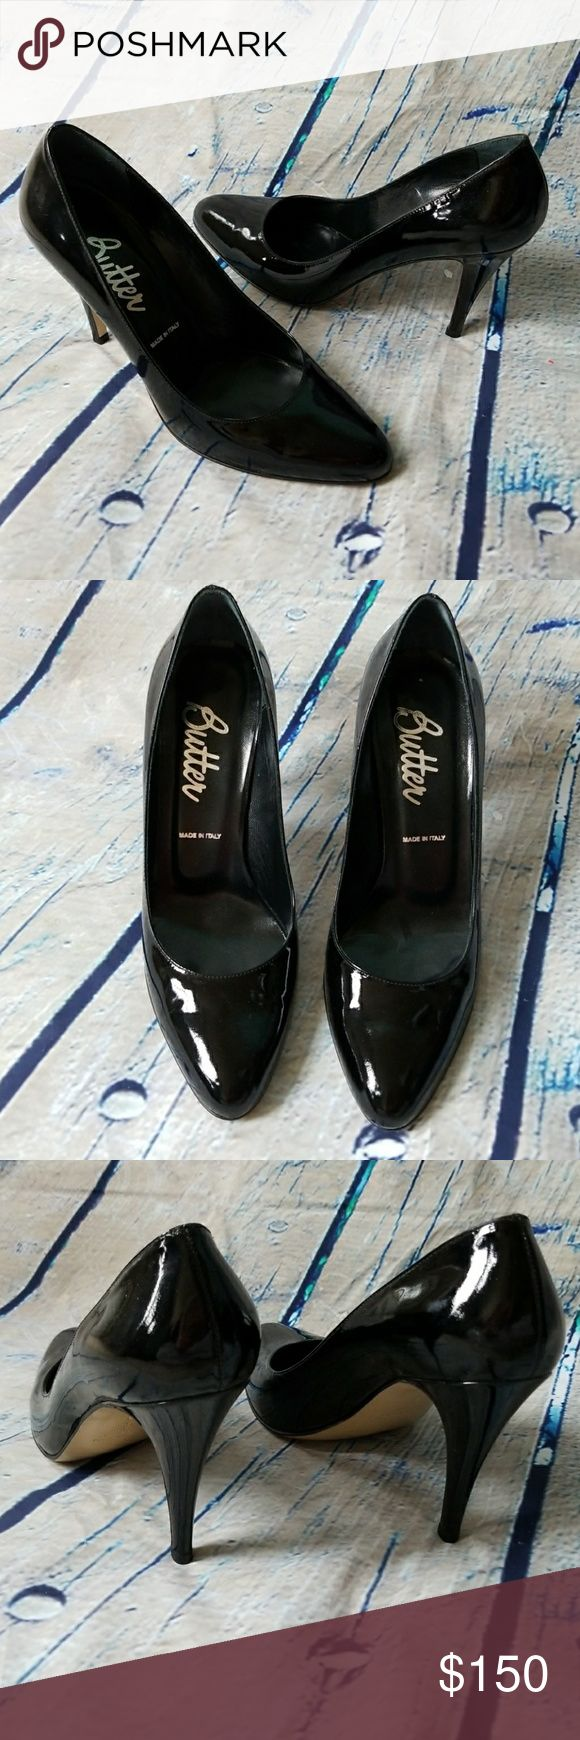 Butter Patent Leather Pumps 🔸️Only worn once! In excellent condition.   🔸️4 inch heel Butter Shoes Shoes Heels